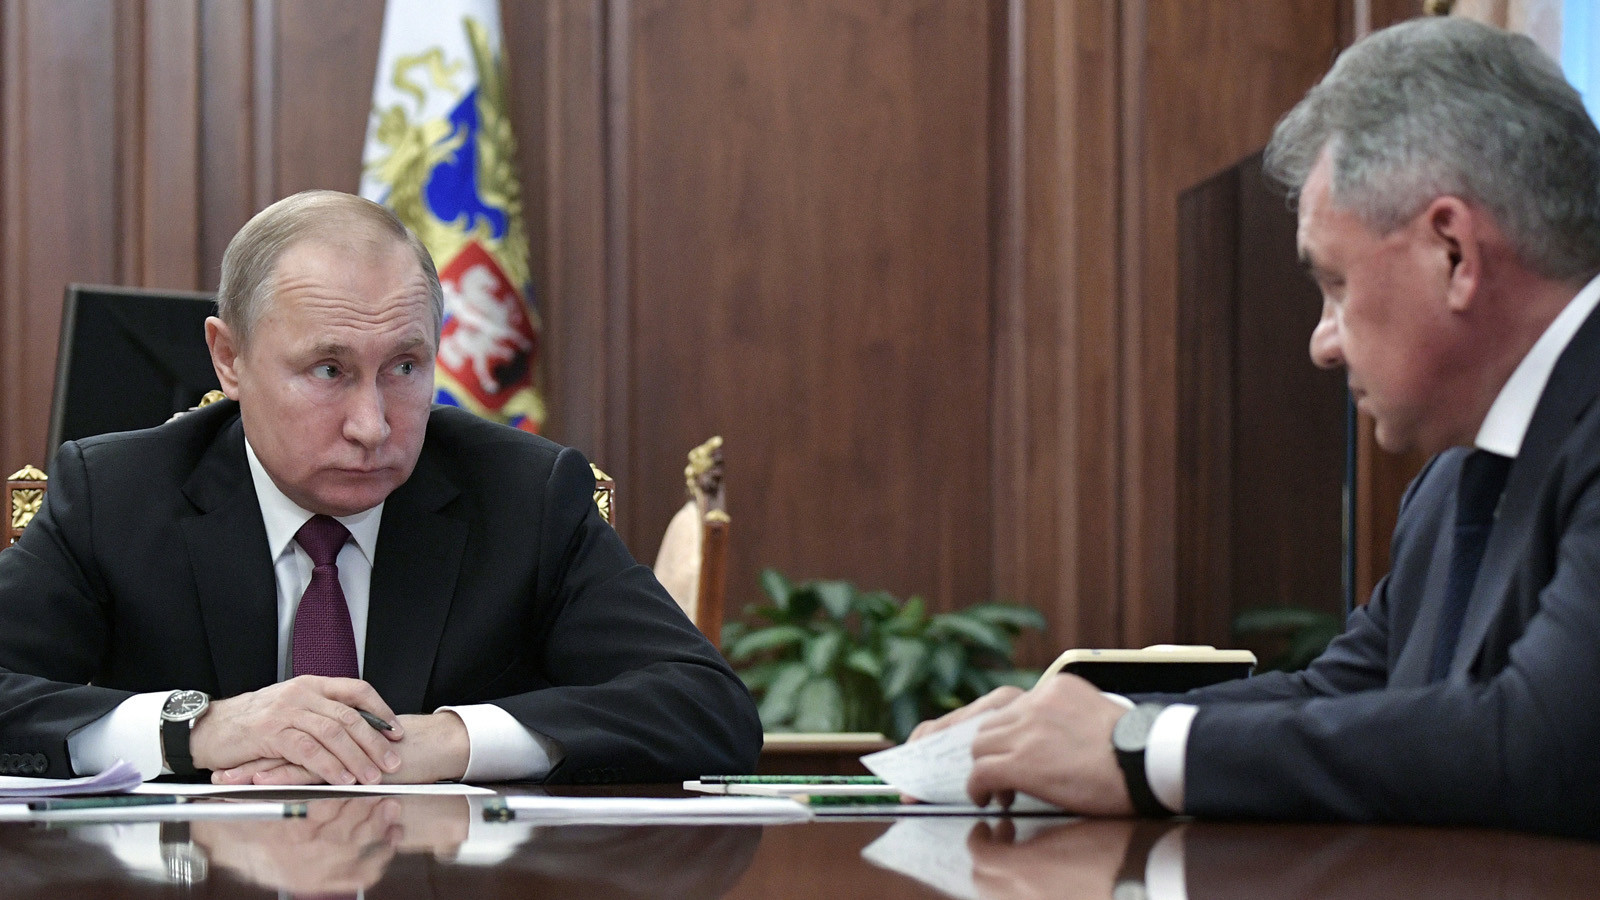 Russia will pull the plug on a key nuclear arms pact, following U.S. lead